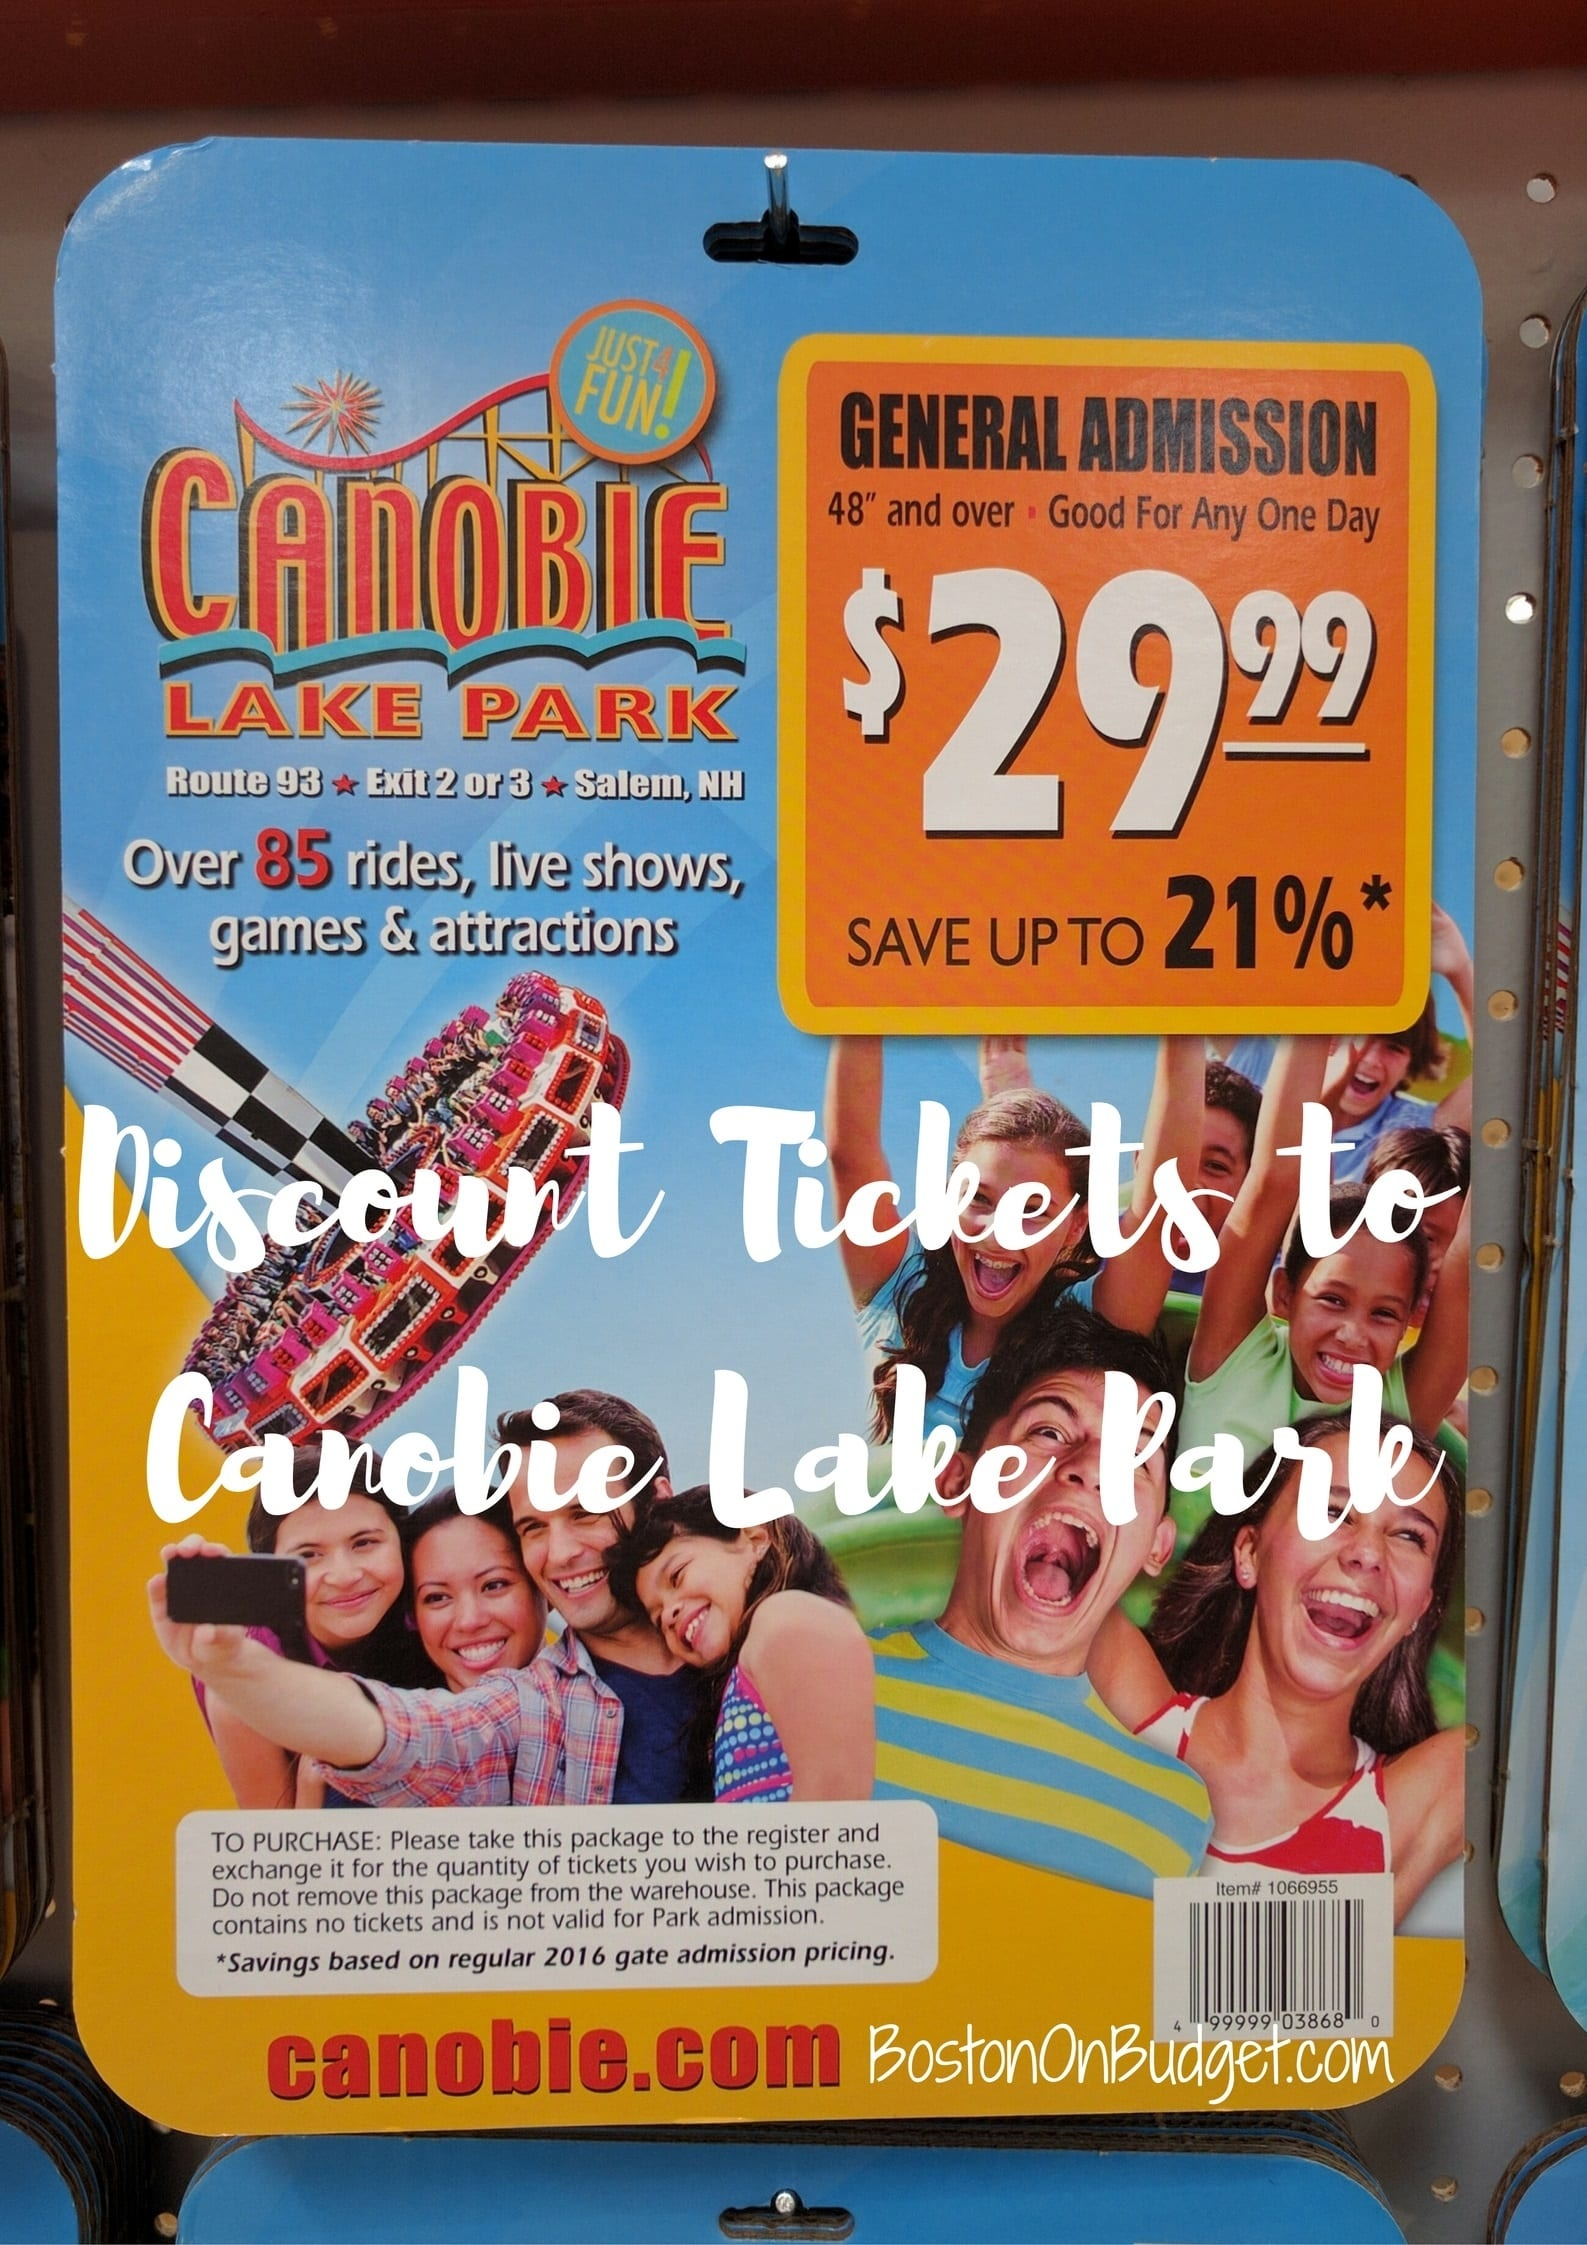 Canobie Lake Park Discounts - Boston On Budget - Free Printable Coupons For Canobie Lake Park